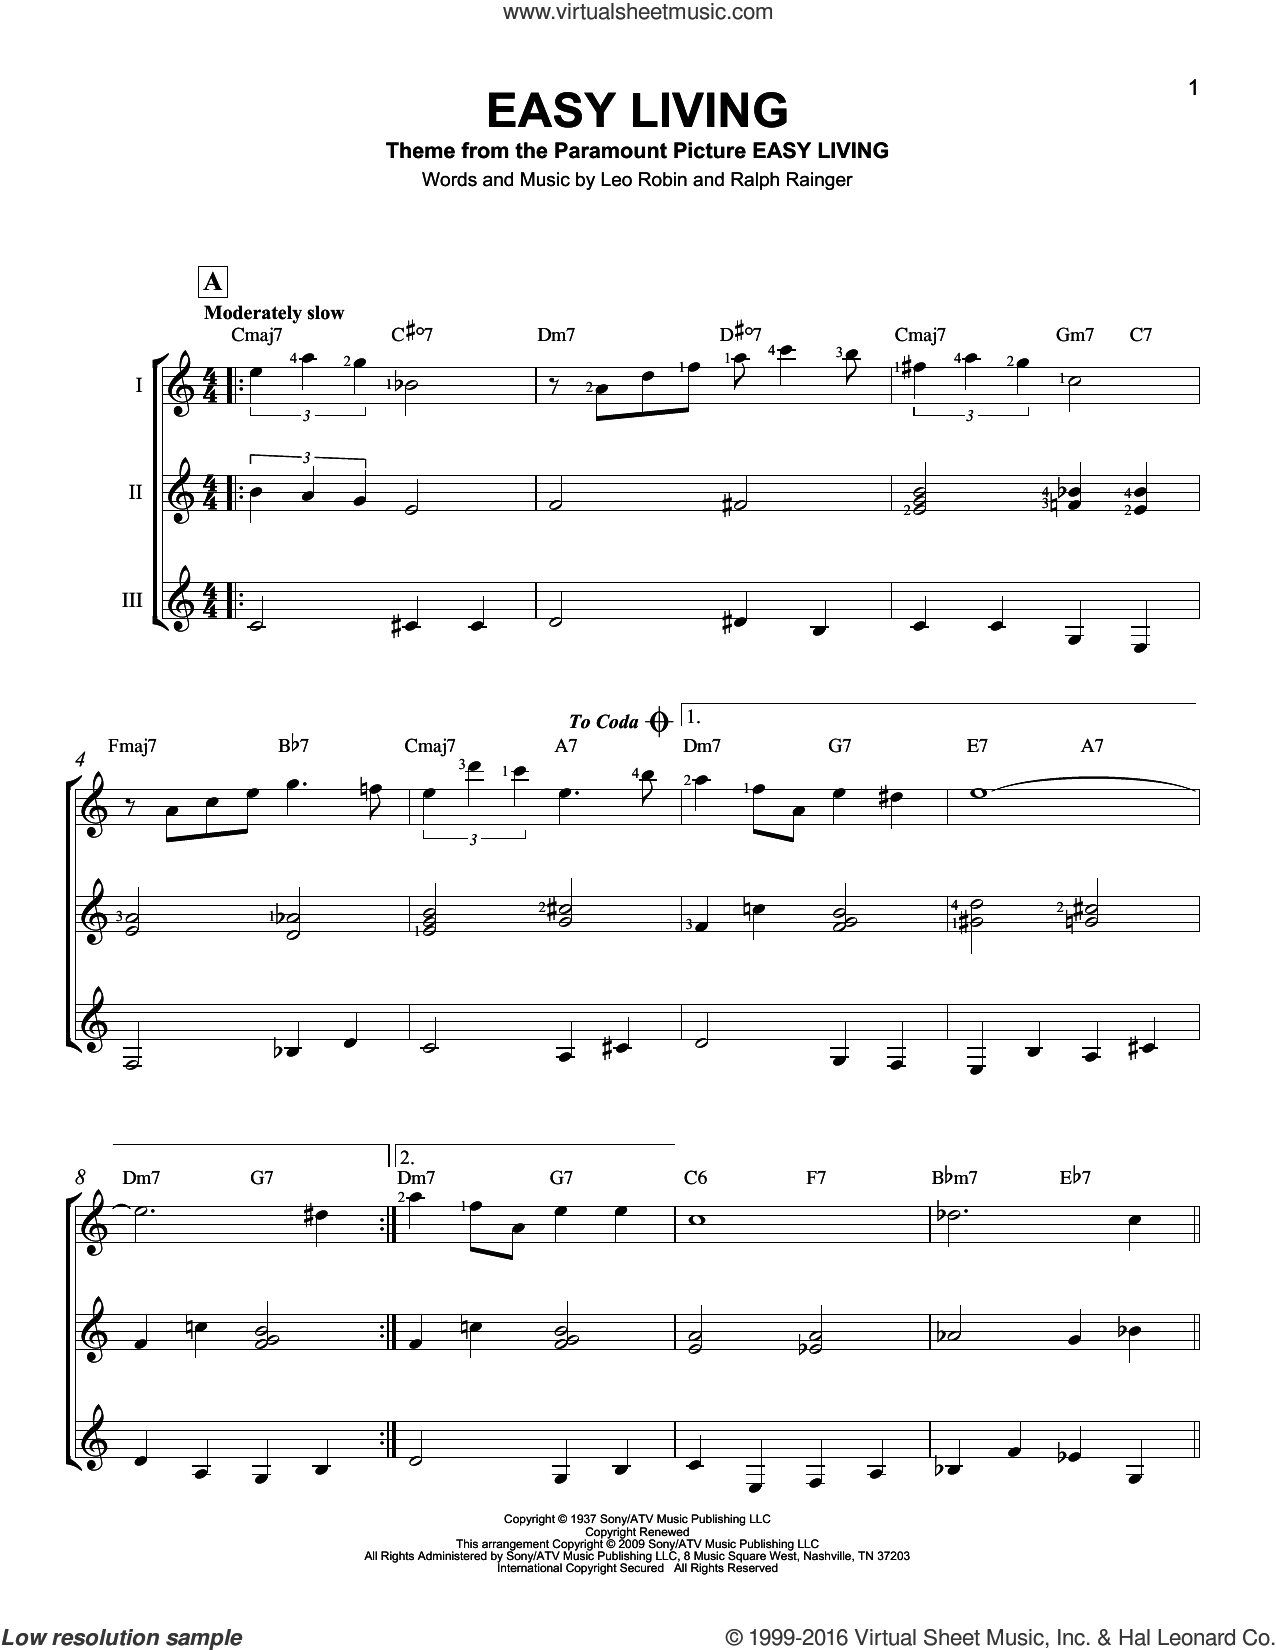 Easy Living sheet music for guitar ensemble by Ralph Rainger & Leo Robin, Billie Holiday, Leo Robin and Ralph Rainger. Score Image Preview.